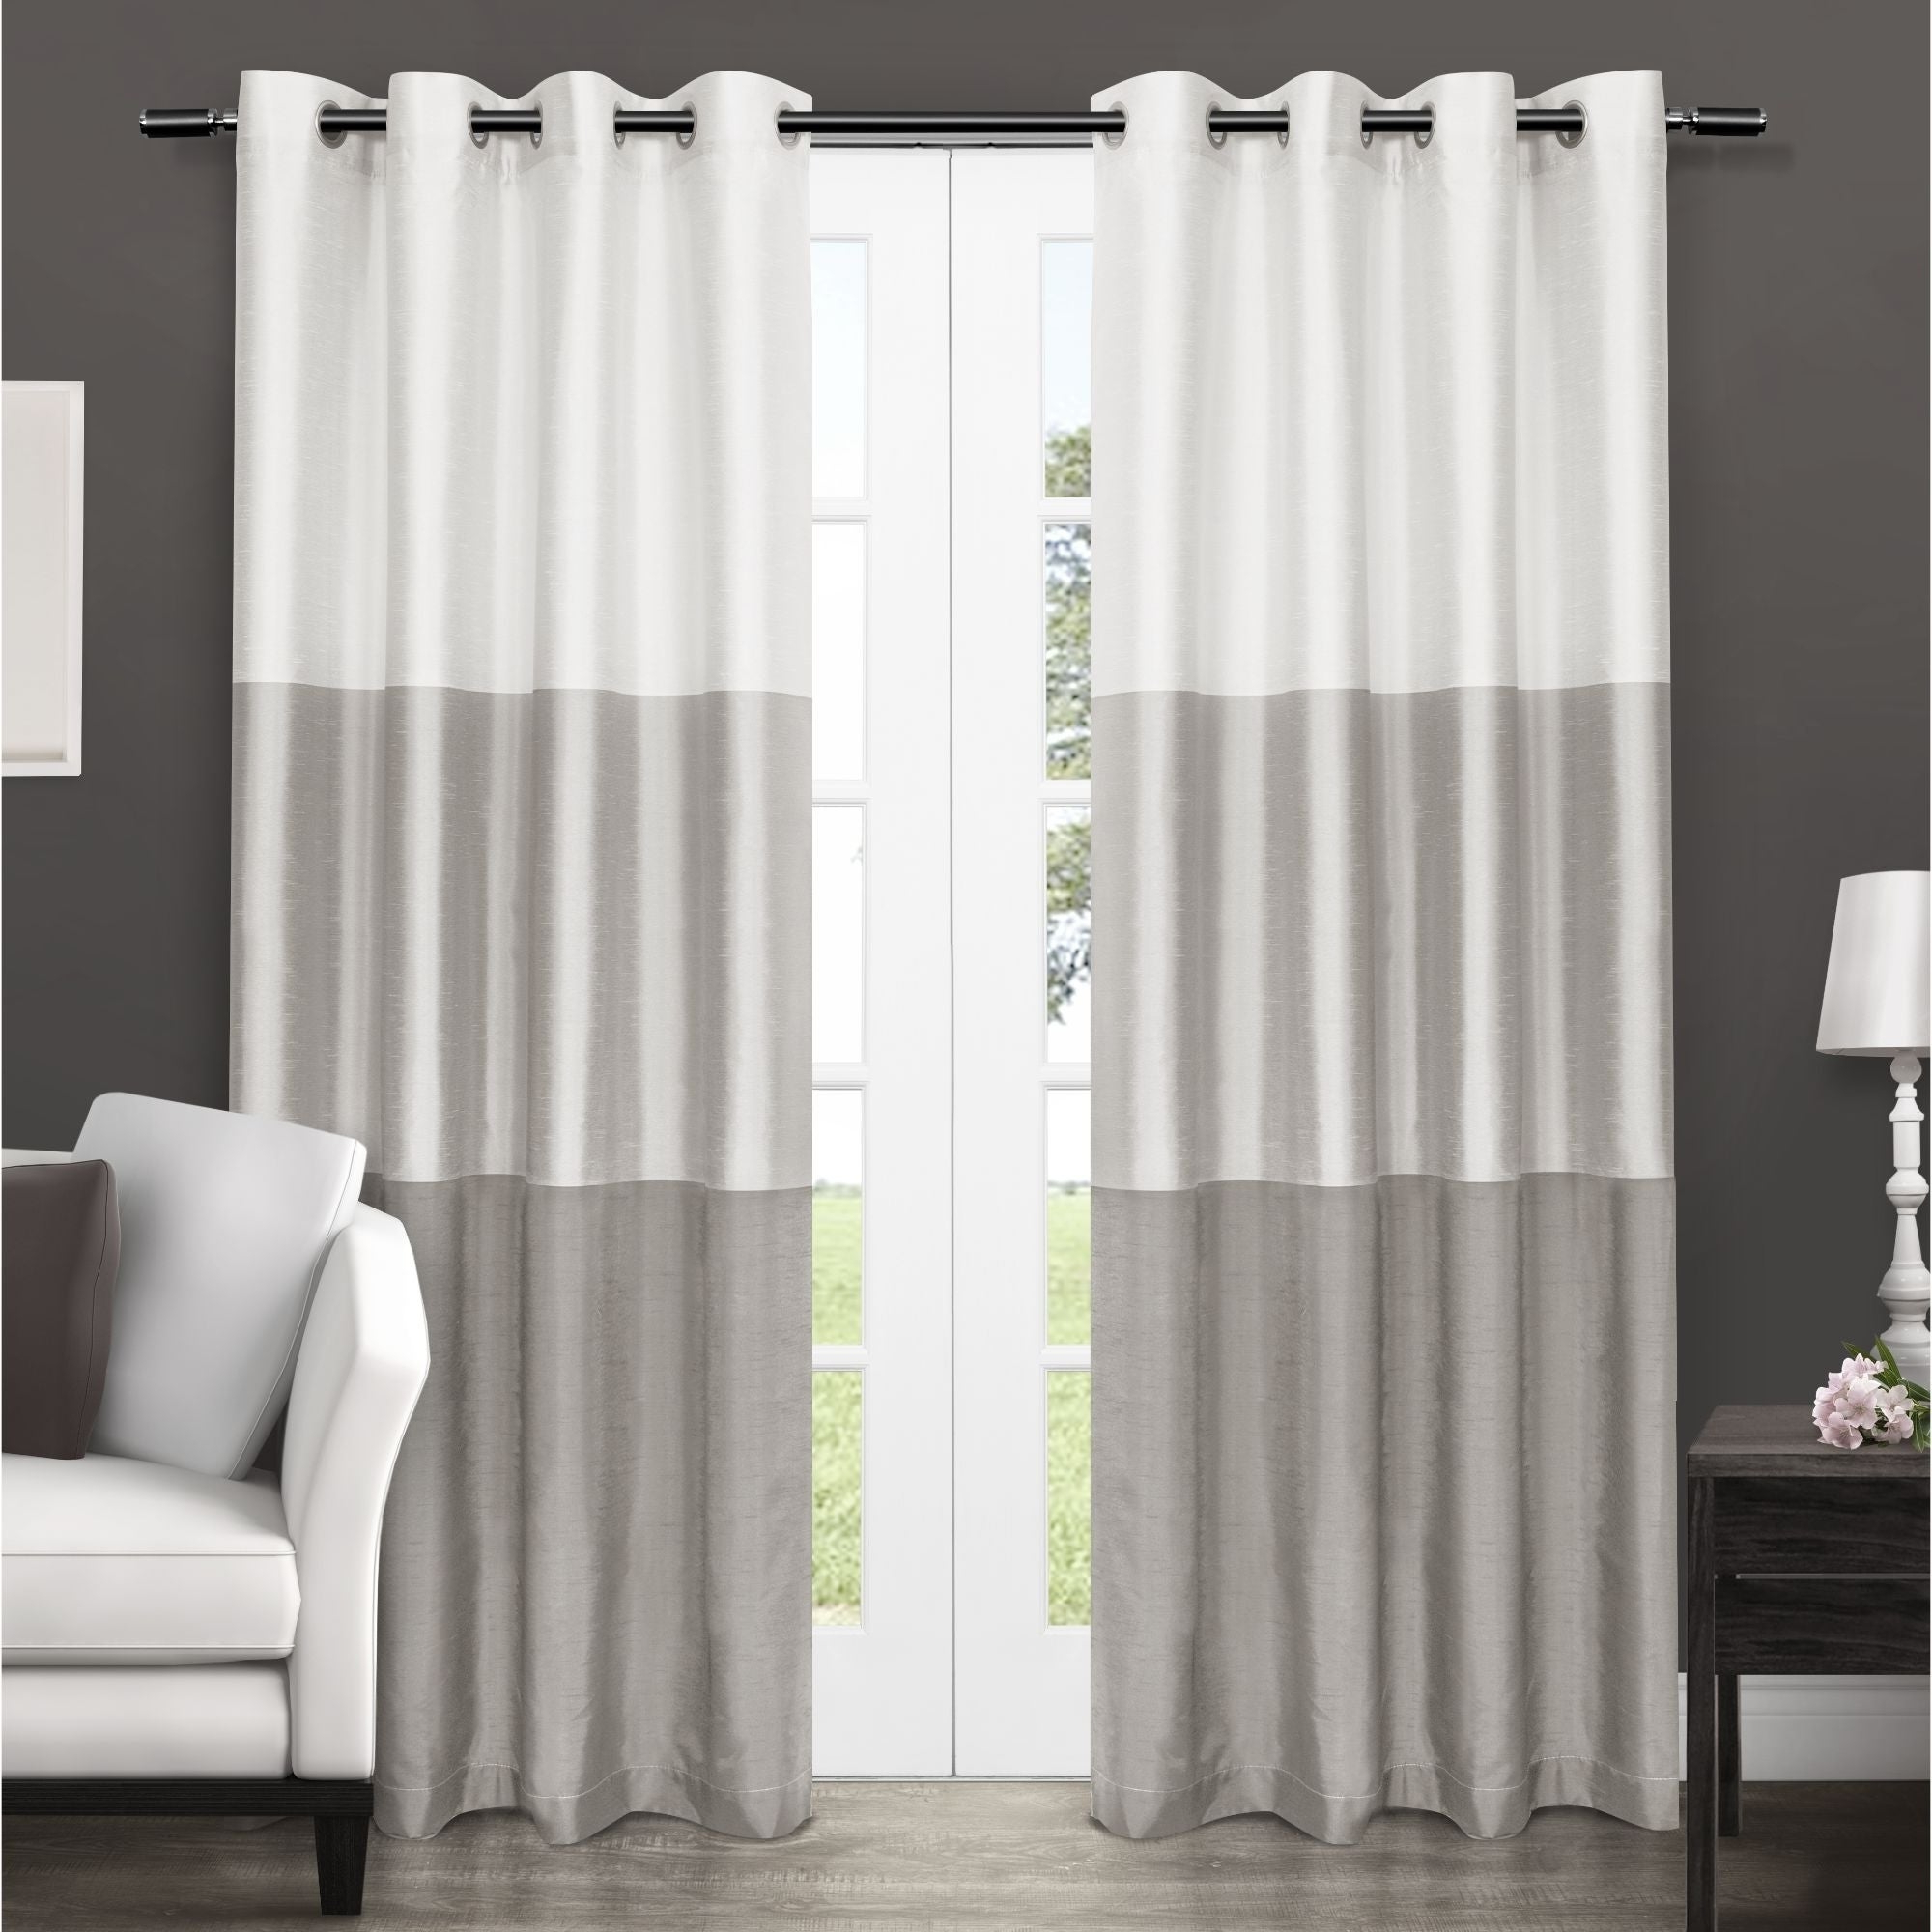 Ocean Striped Window Curtain Panel Pairs With Grommet Top Throughout Well Known Porch & Den Ocean Striped Window Curtain Panel Pair With Grommet Top (View 4 of 20)